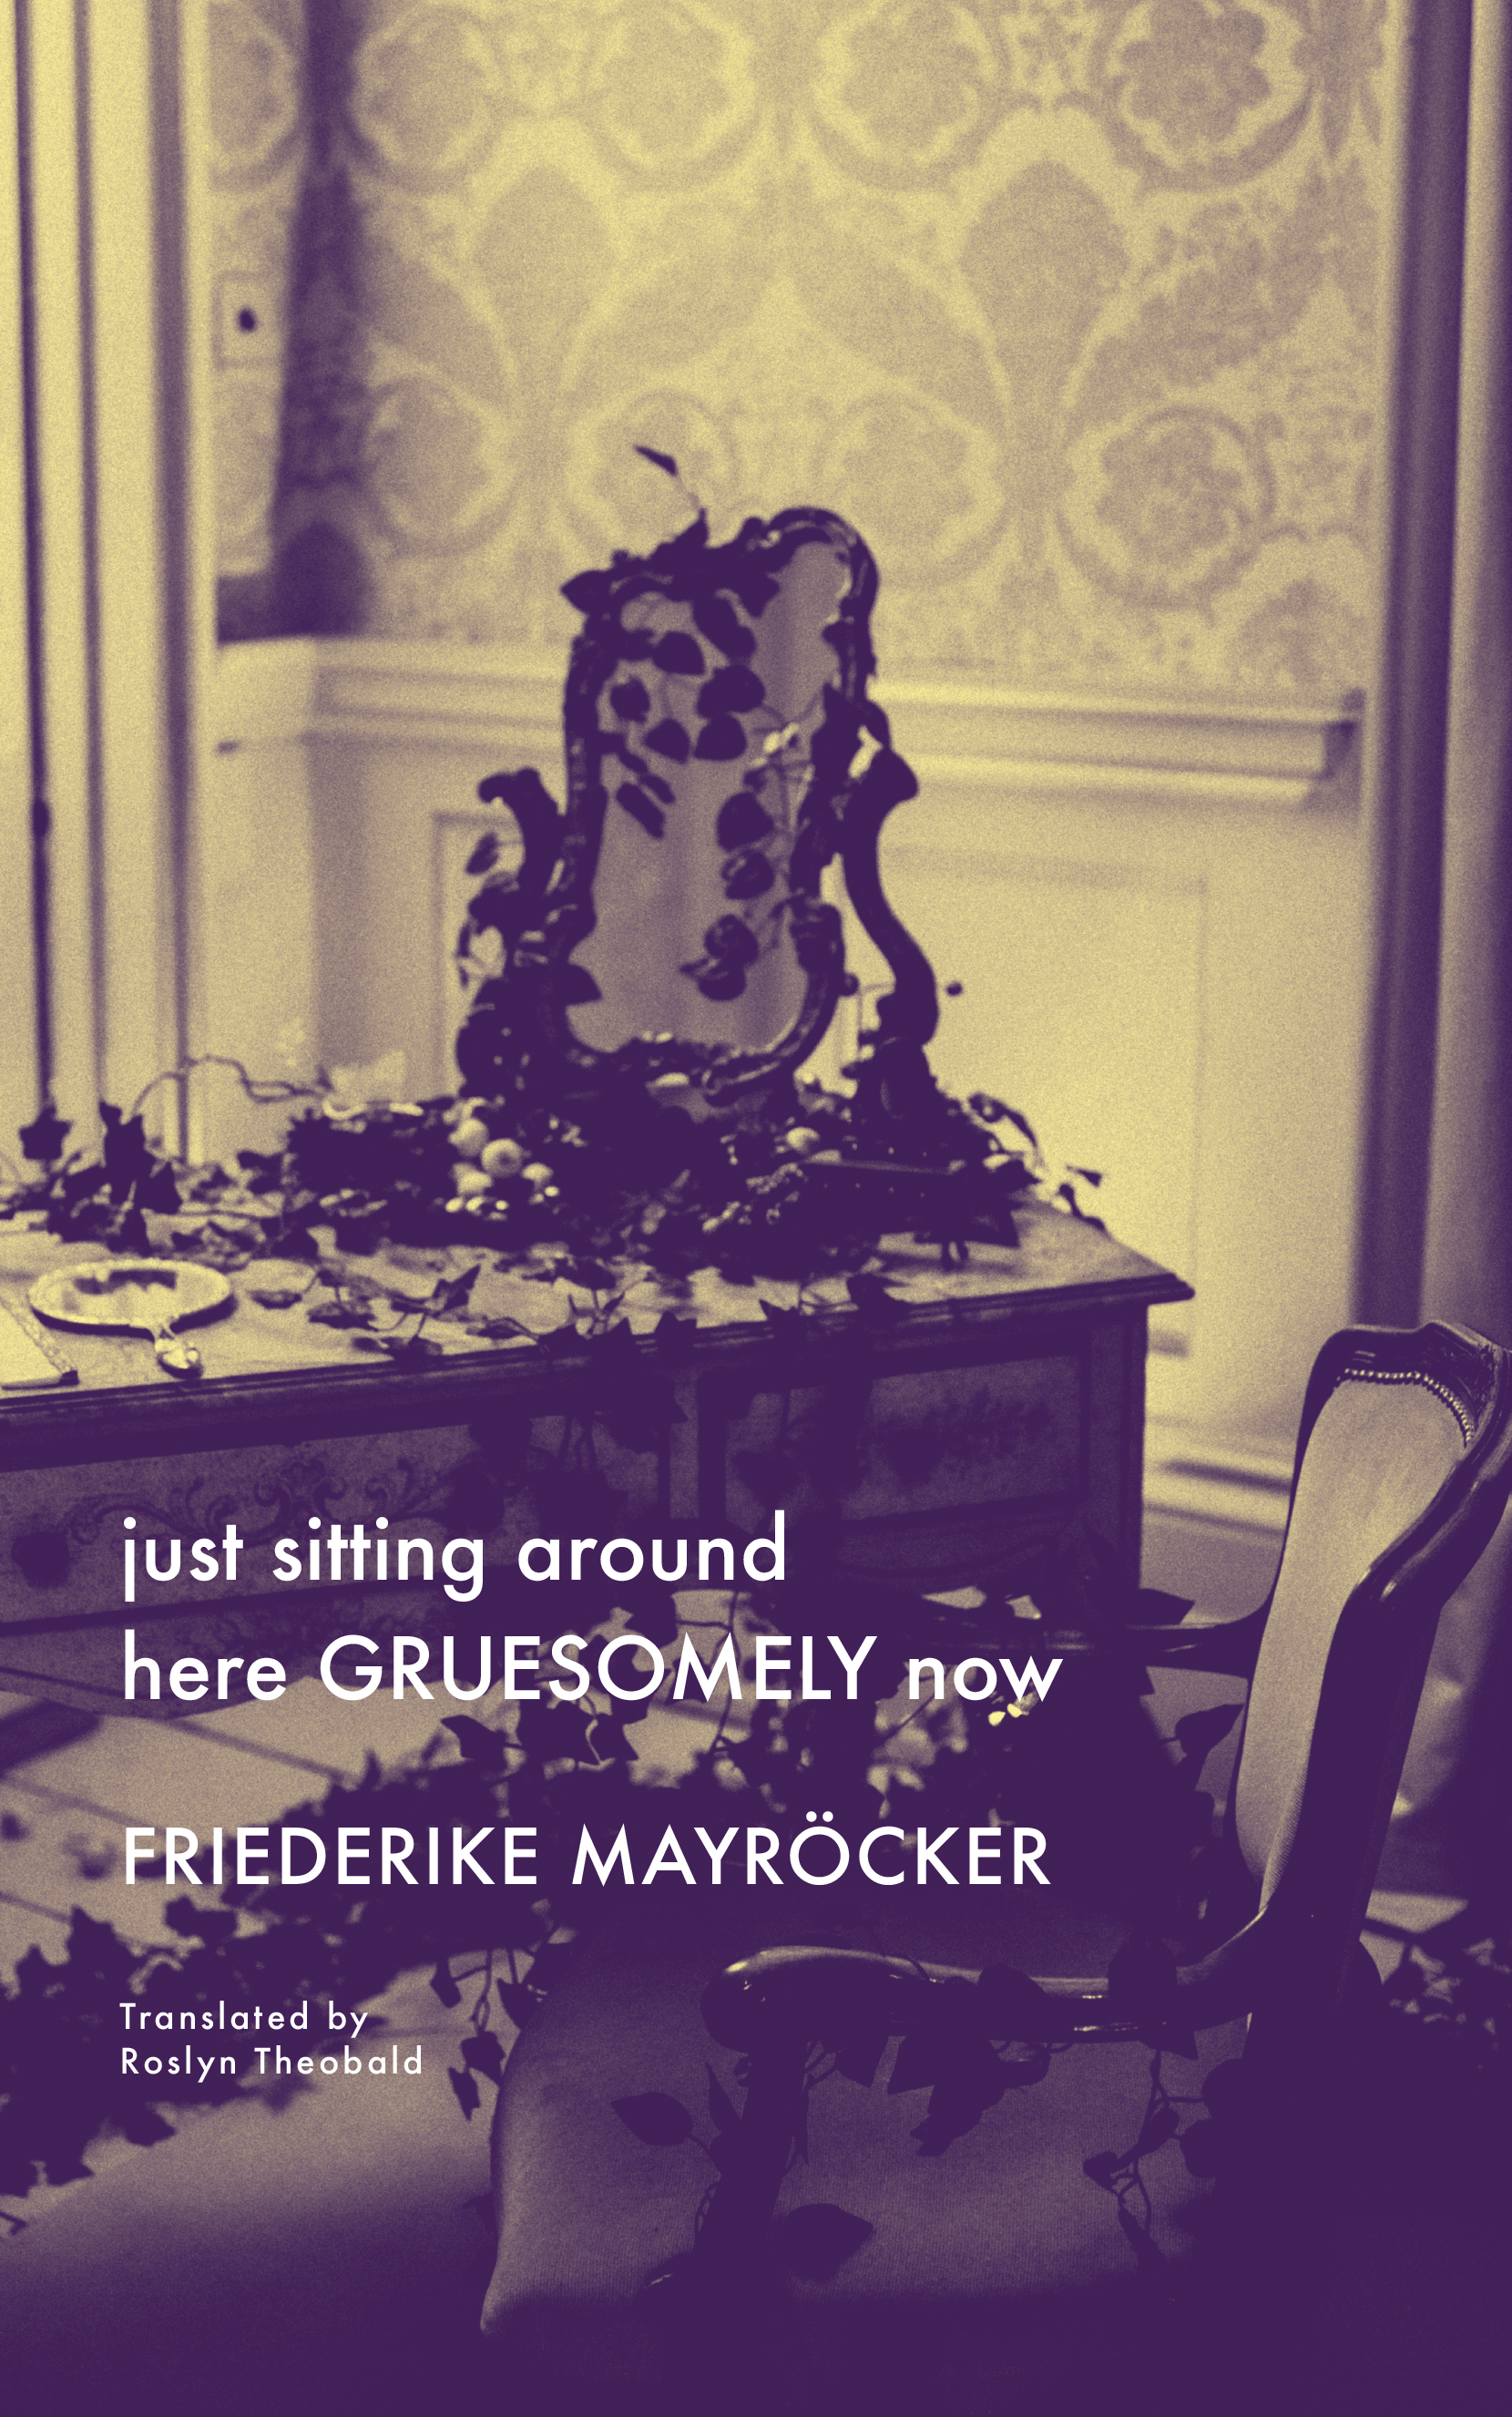 just sitting around here GRUESOMELY now by Friederike Mayröcker | Seagull Books